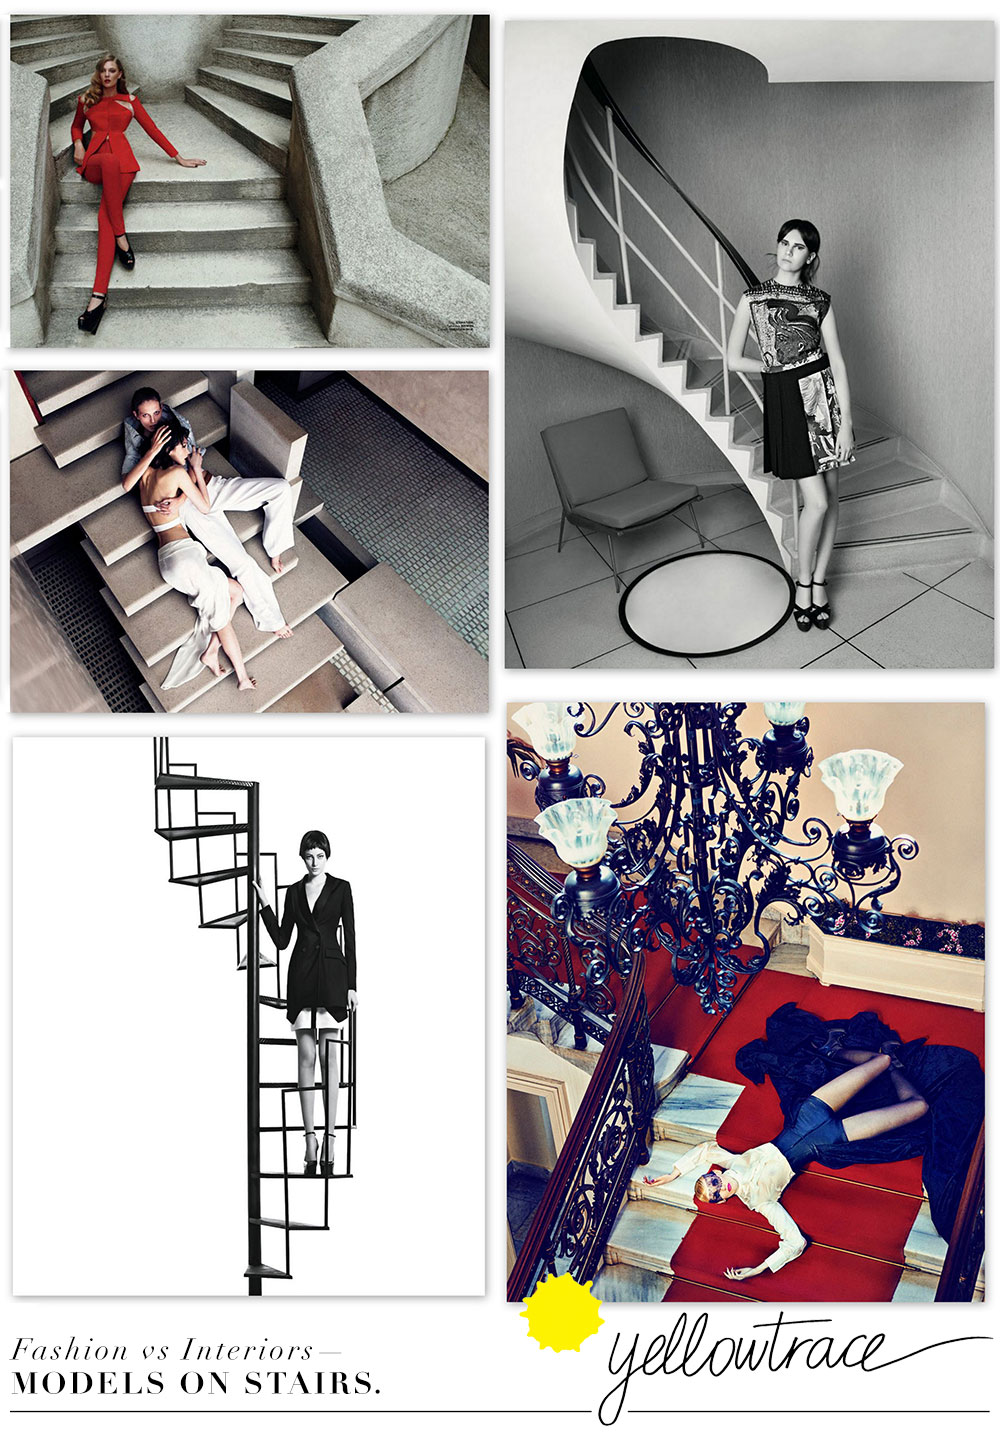 Fashion Photography vs Amazing Interiors—Models on Stairs.